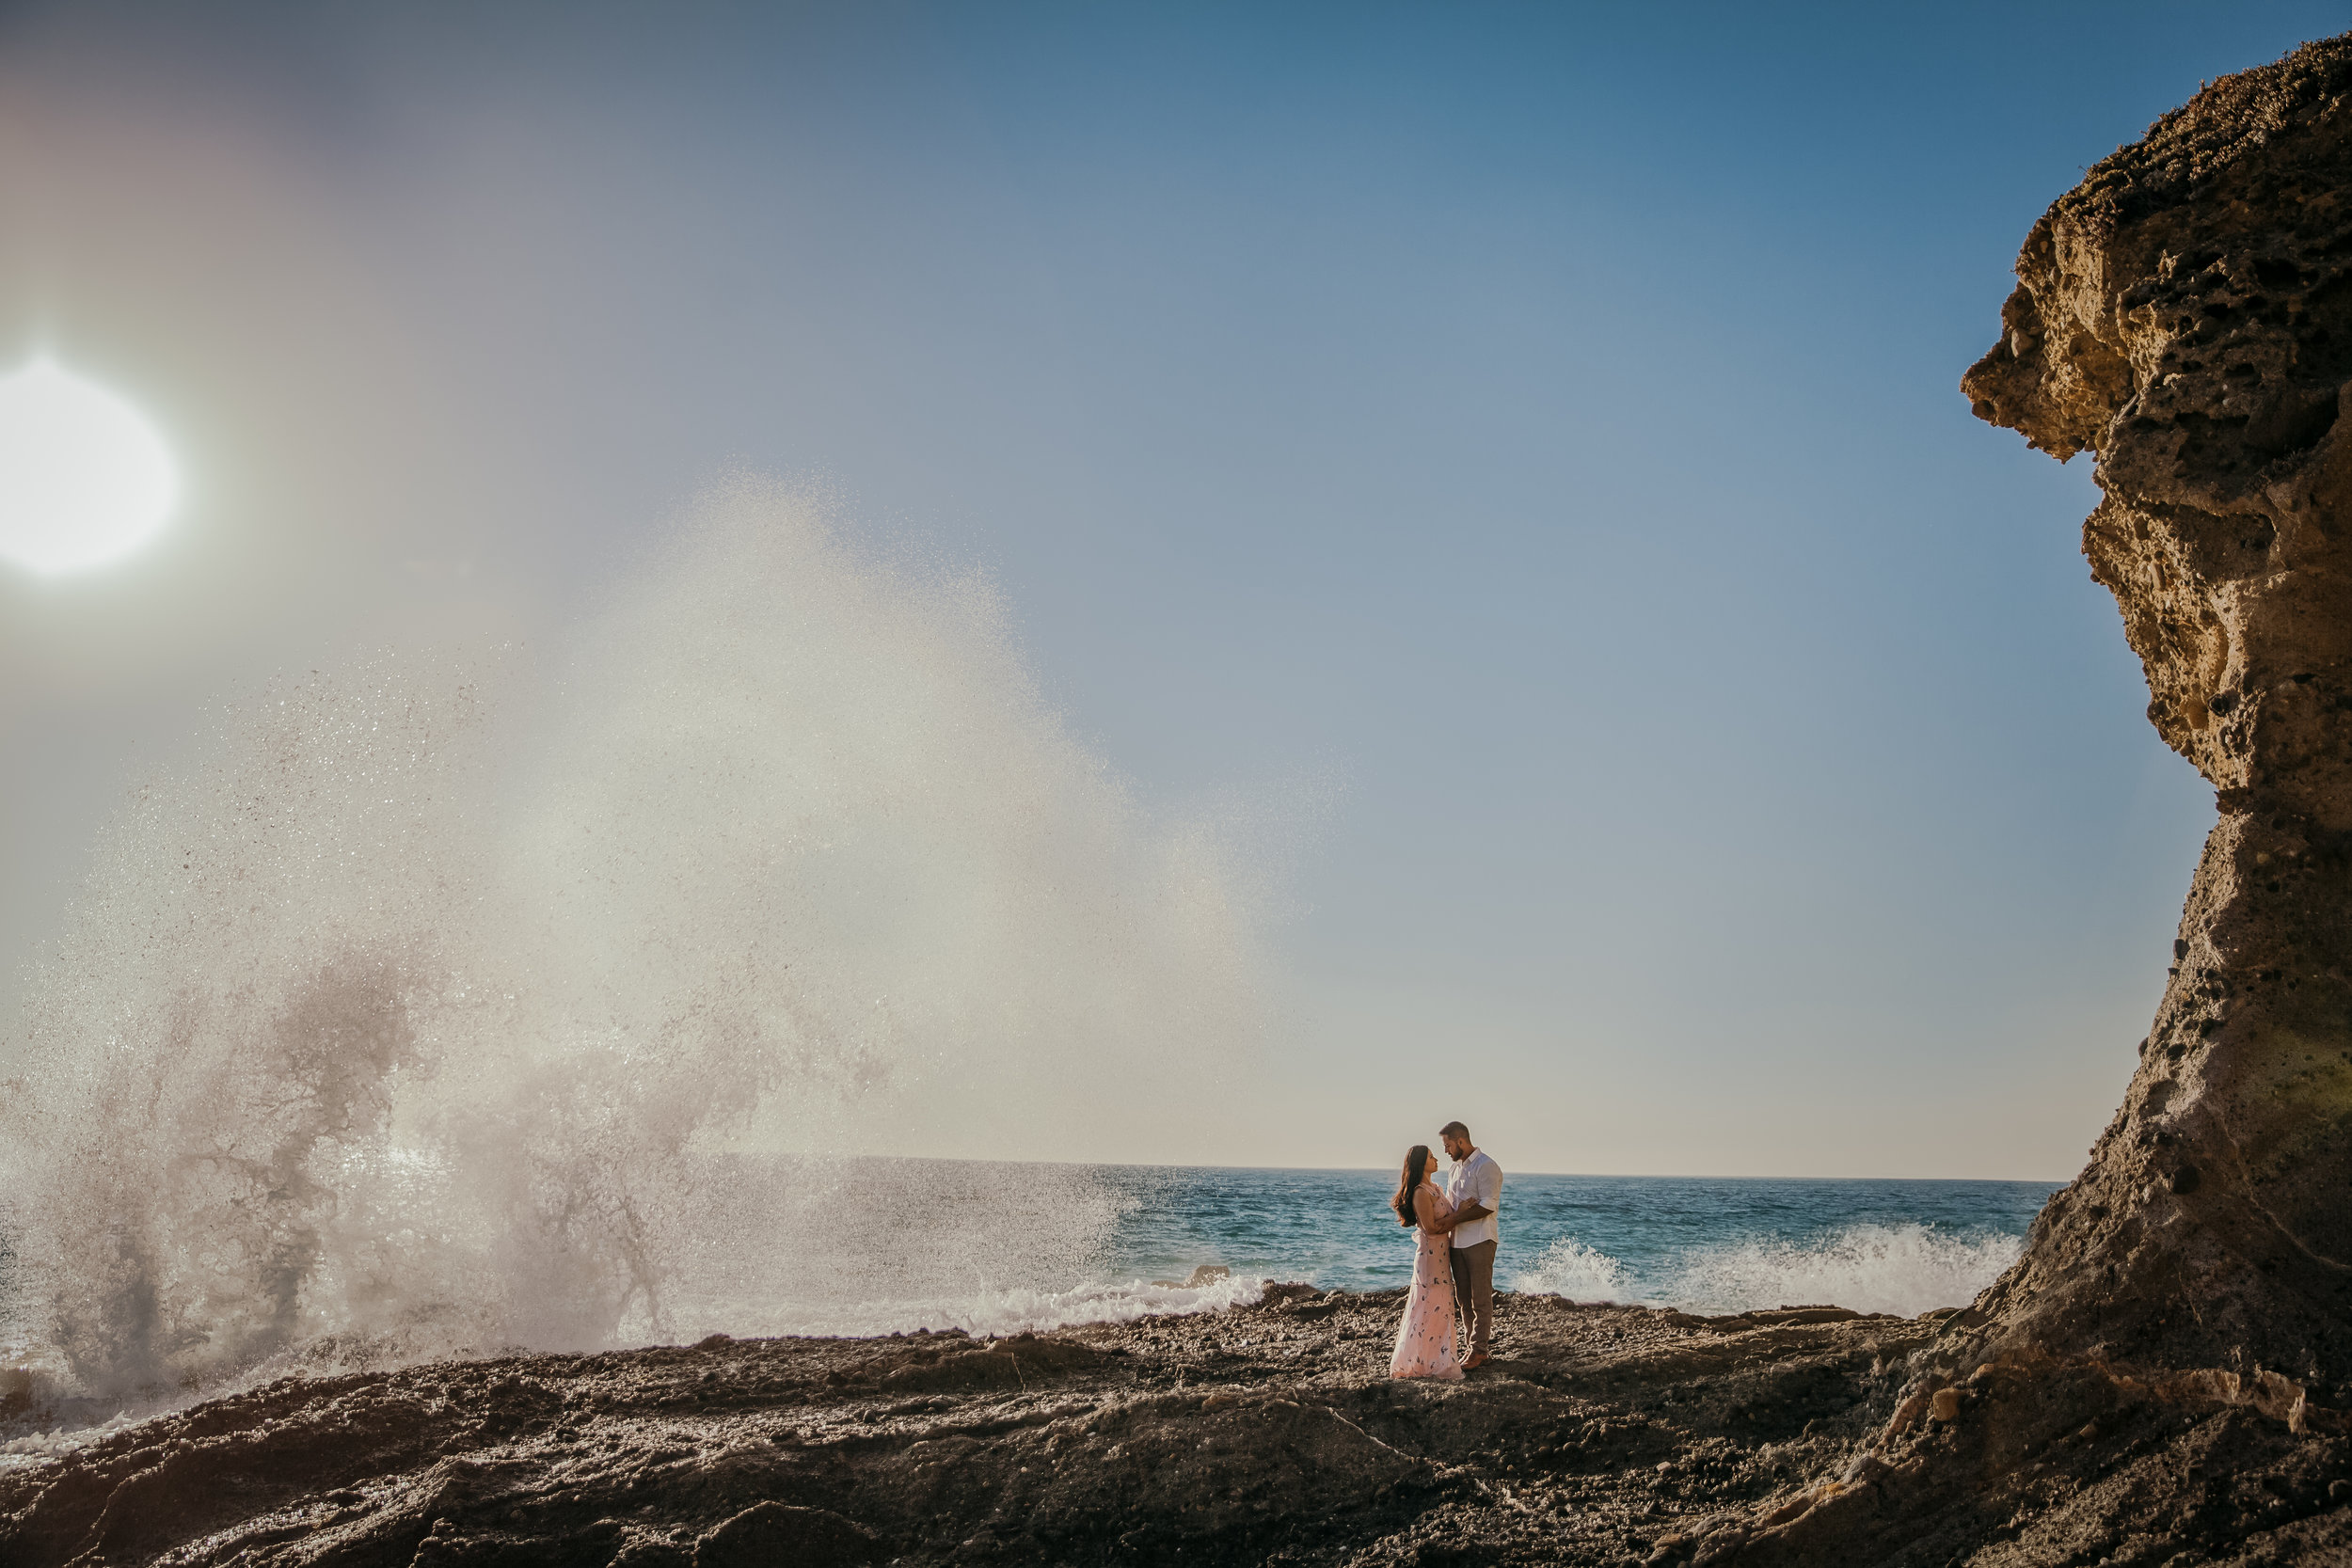 A couple standing on a rocky outcrop as ocean waves crash behind them.